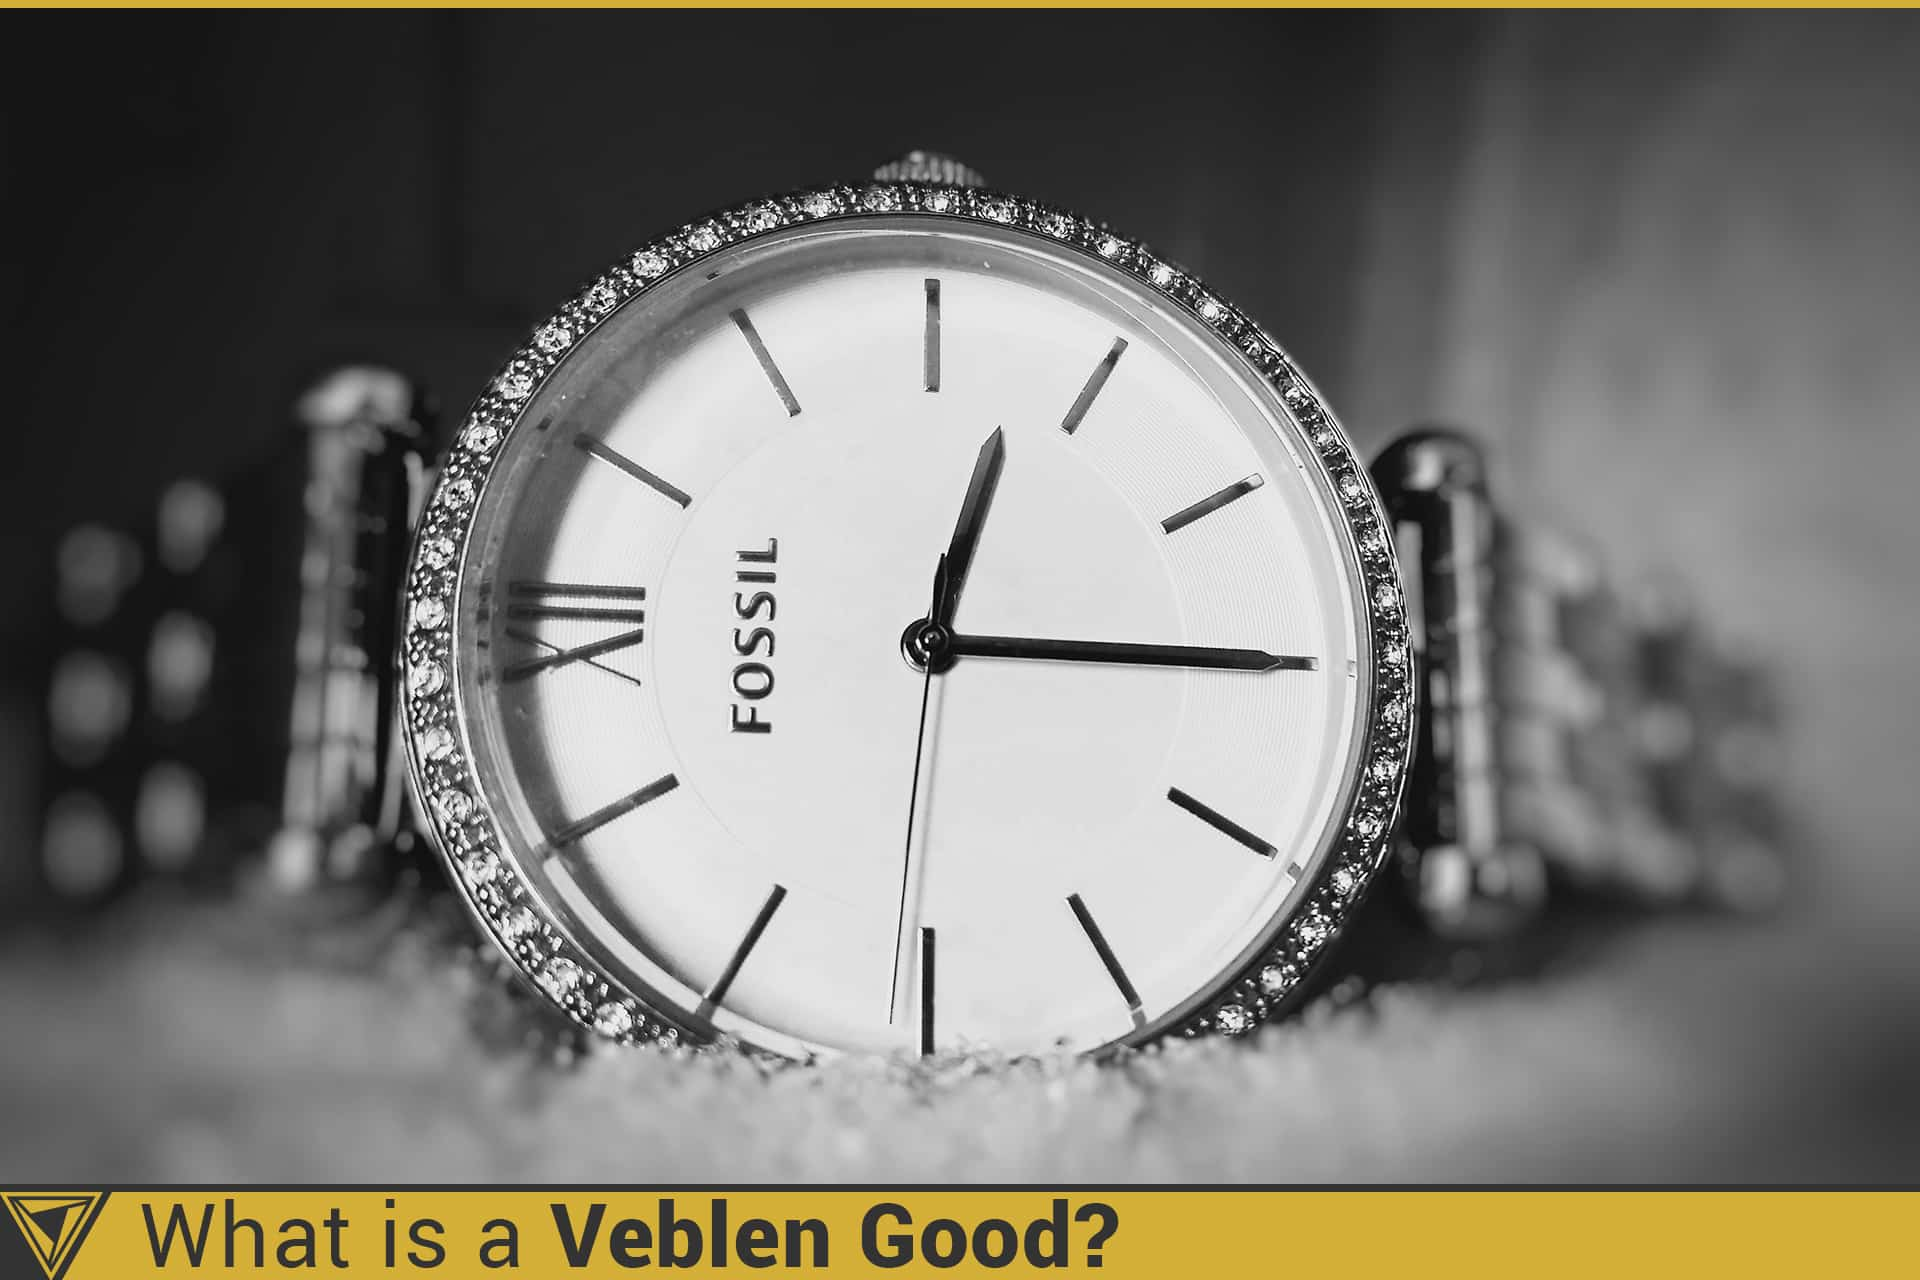 Diamond encrusted watch by Fossil. What is a Veblen good?